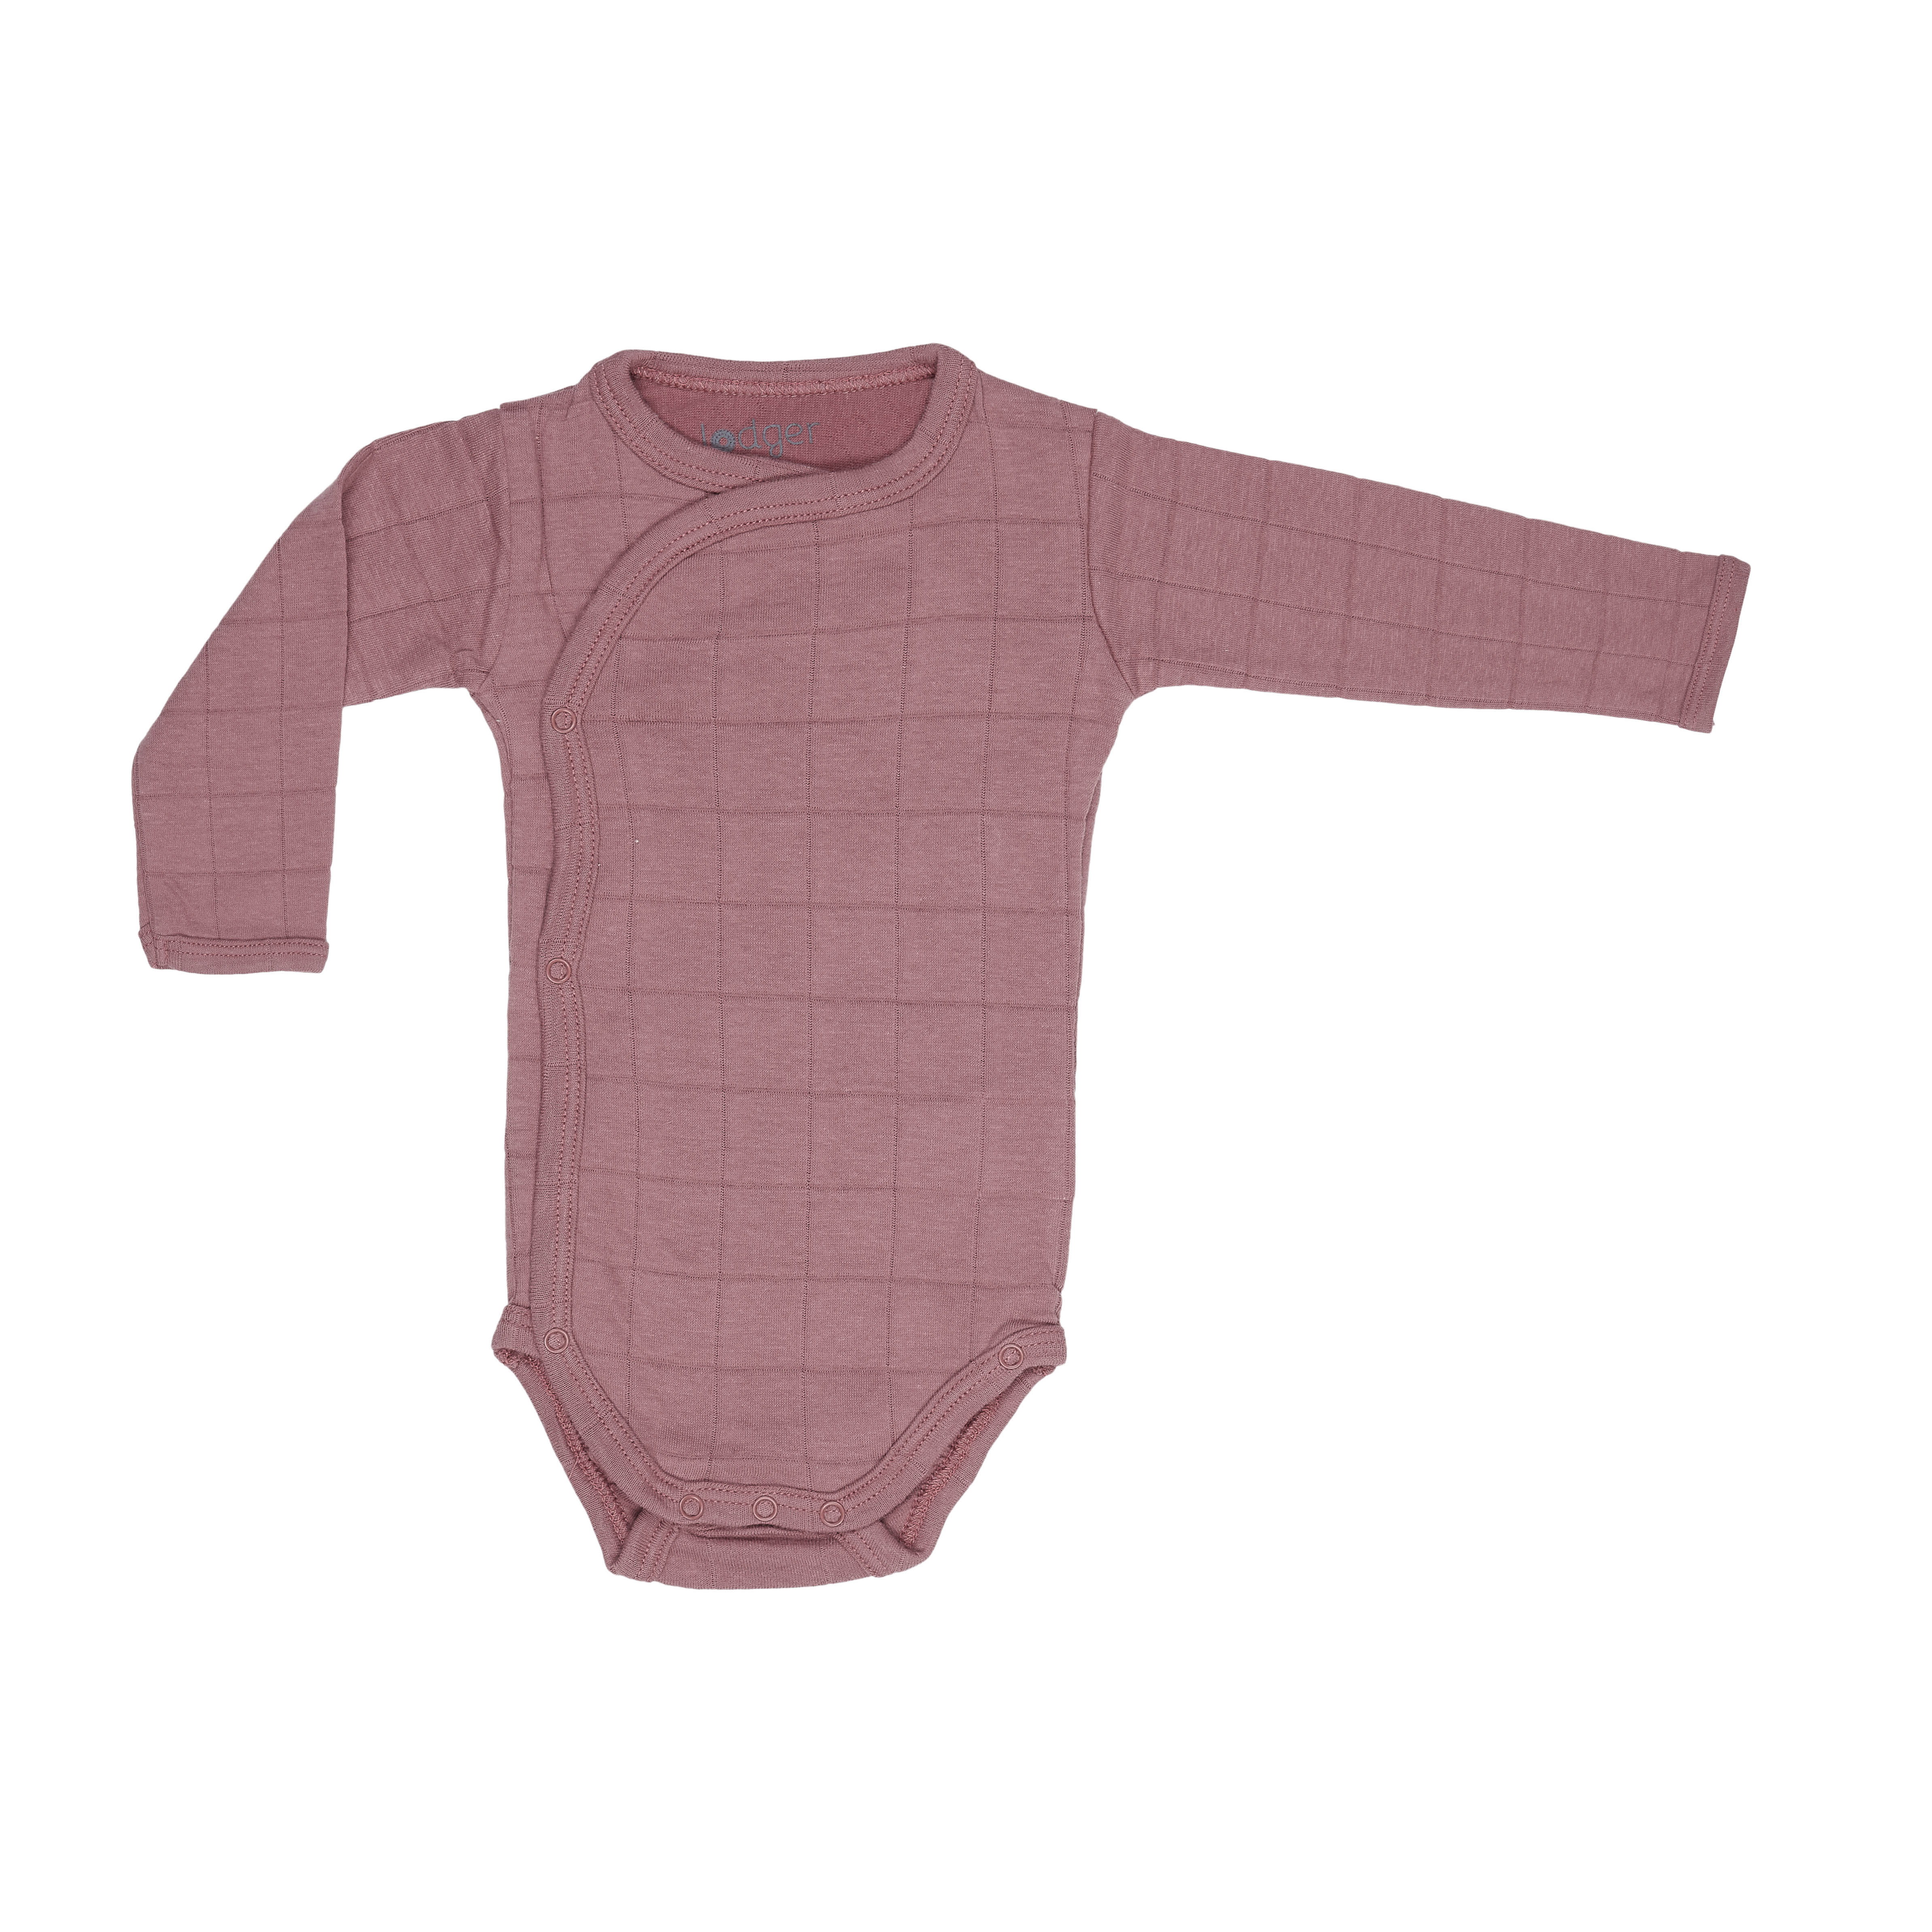 86a5f0958 Romper Solid wrap-around baby bodysuit with long sleeves